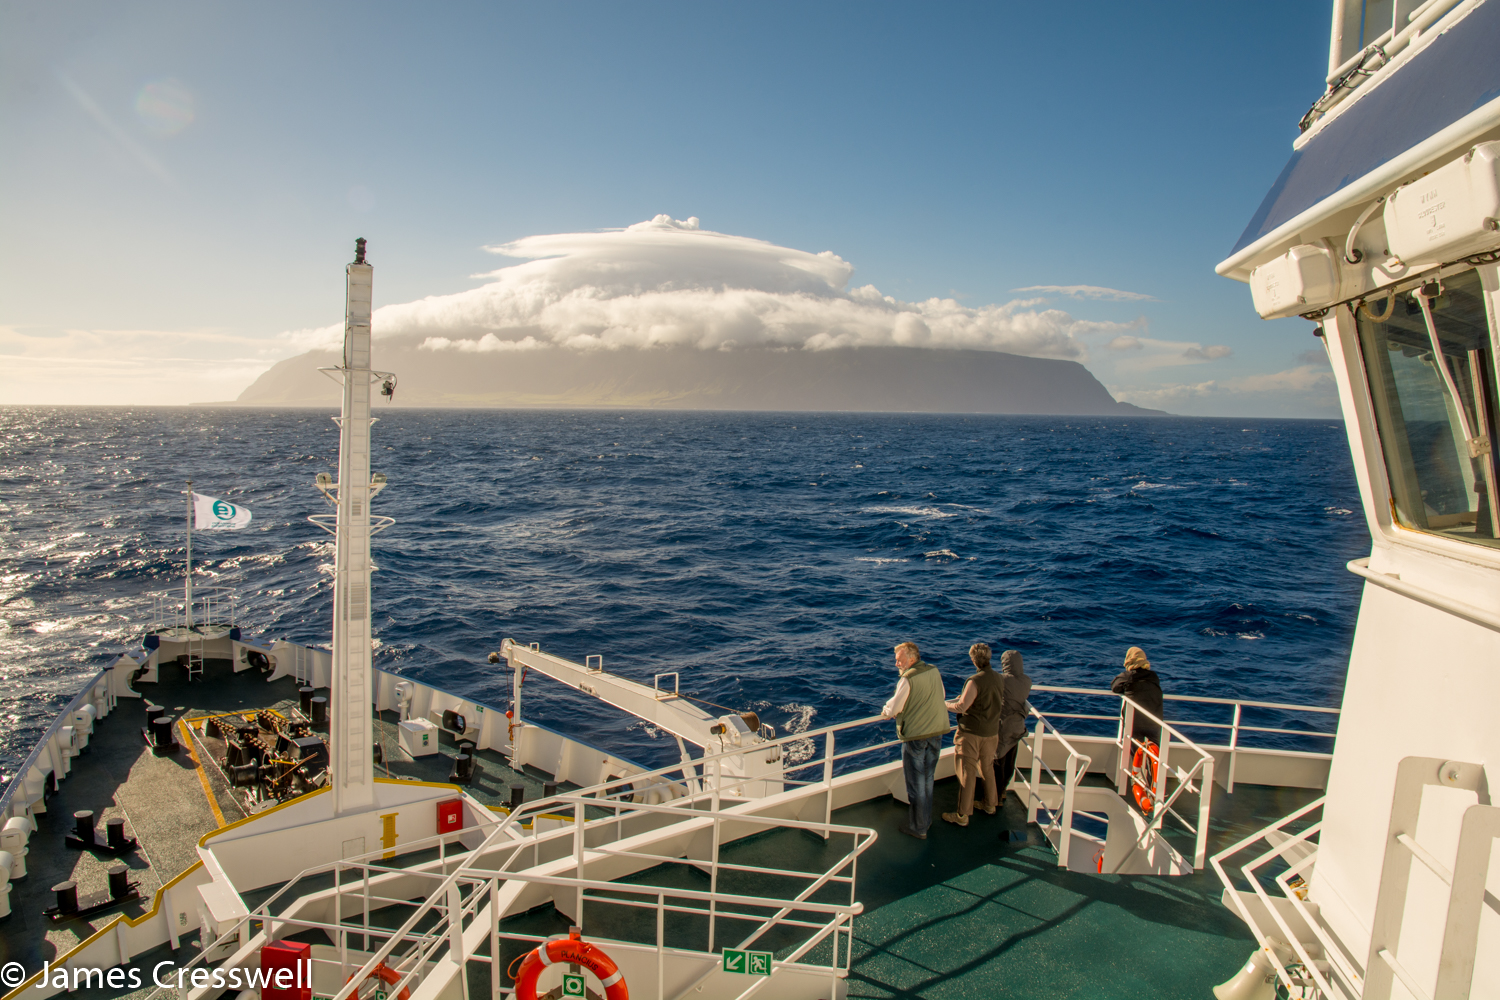 A ship approaching Tristan da Cunha, taken on a PolarWorld Travel placed cruise